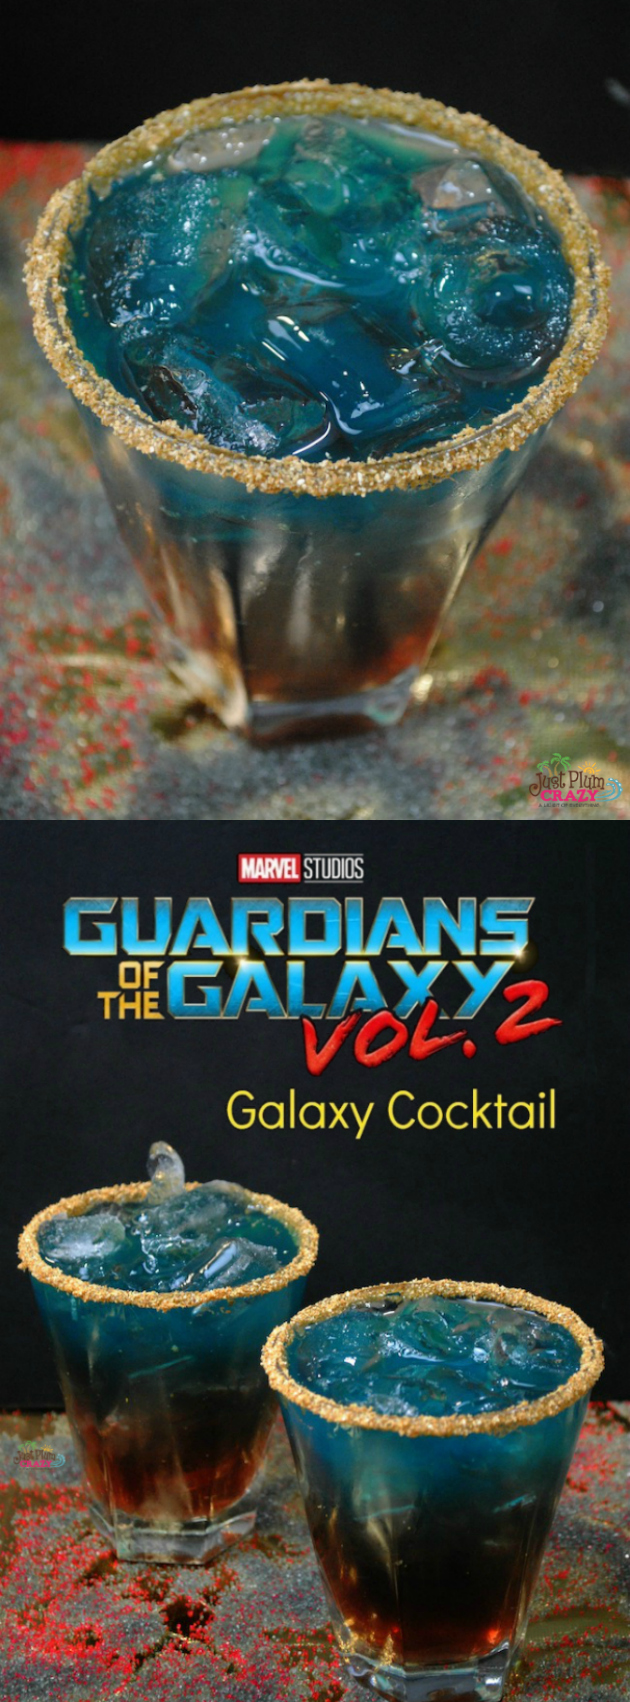 With Guardians of the Galaxy Vol. 2 in theaters this past weekend, I thought it fitting to make a Galaxy Cocktail recipe to celebrate.